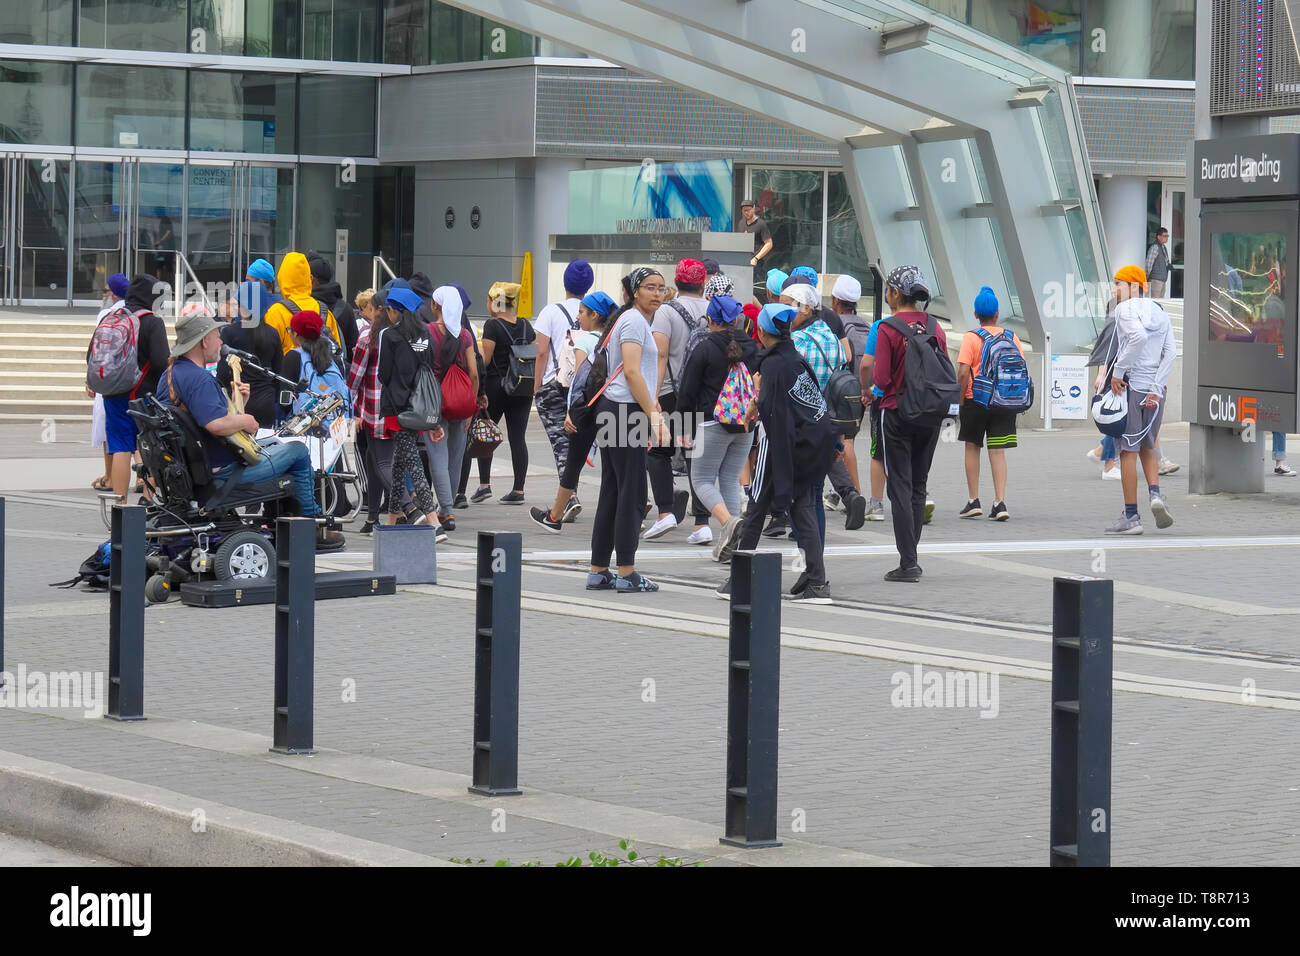 A group of young people gathered at Vancouver Convention Centre.  A street musician entertains. - Stock Image